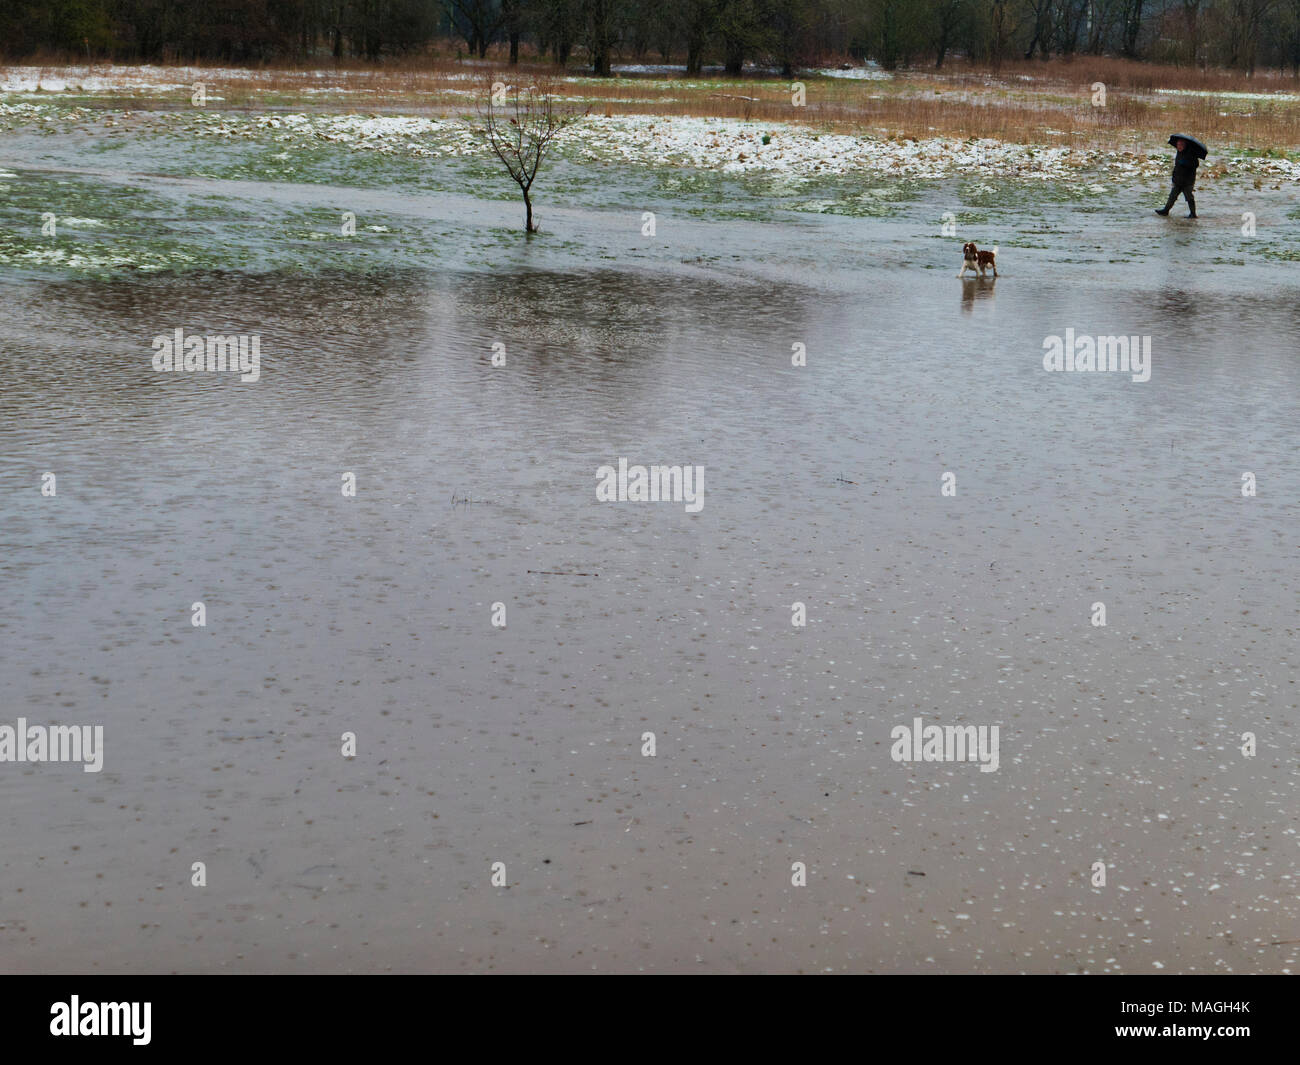 Ashbourne, Derbyshire. 2nd Apr, 2018. UK Weather: Man walking his dog after 1' of morning snow quickly melts causing flooding on Easter Bank Holiday Monday in Ashbourne, Derbyshire Credit: Doug Blane/Alamy Live News - Stock Image